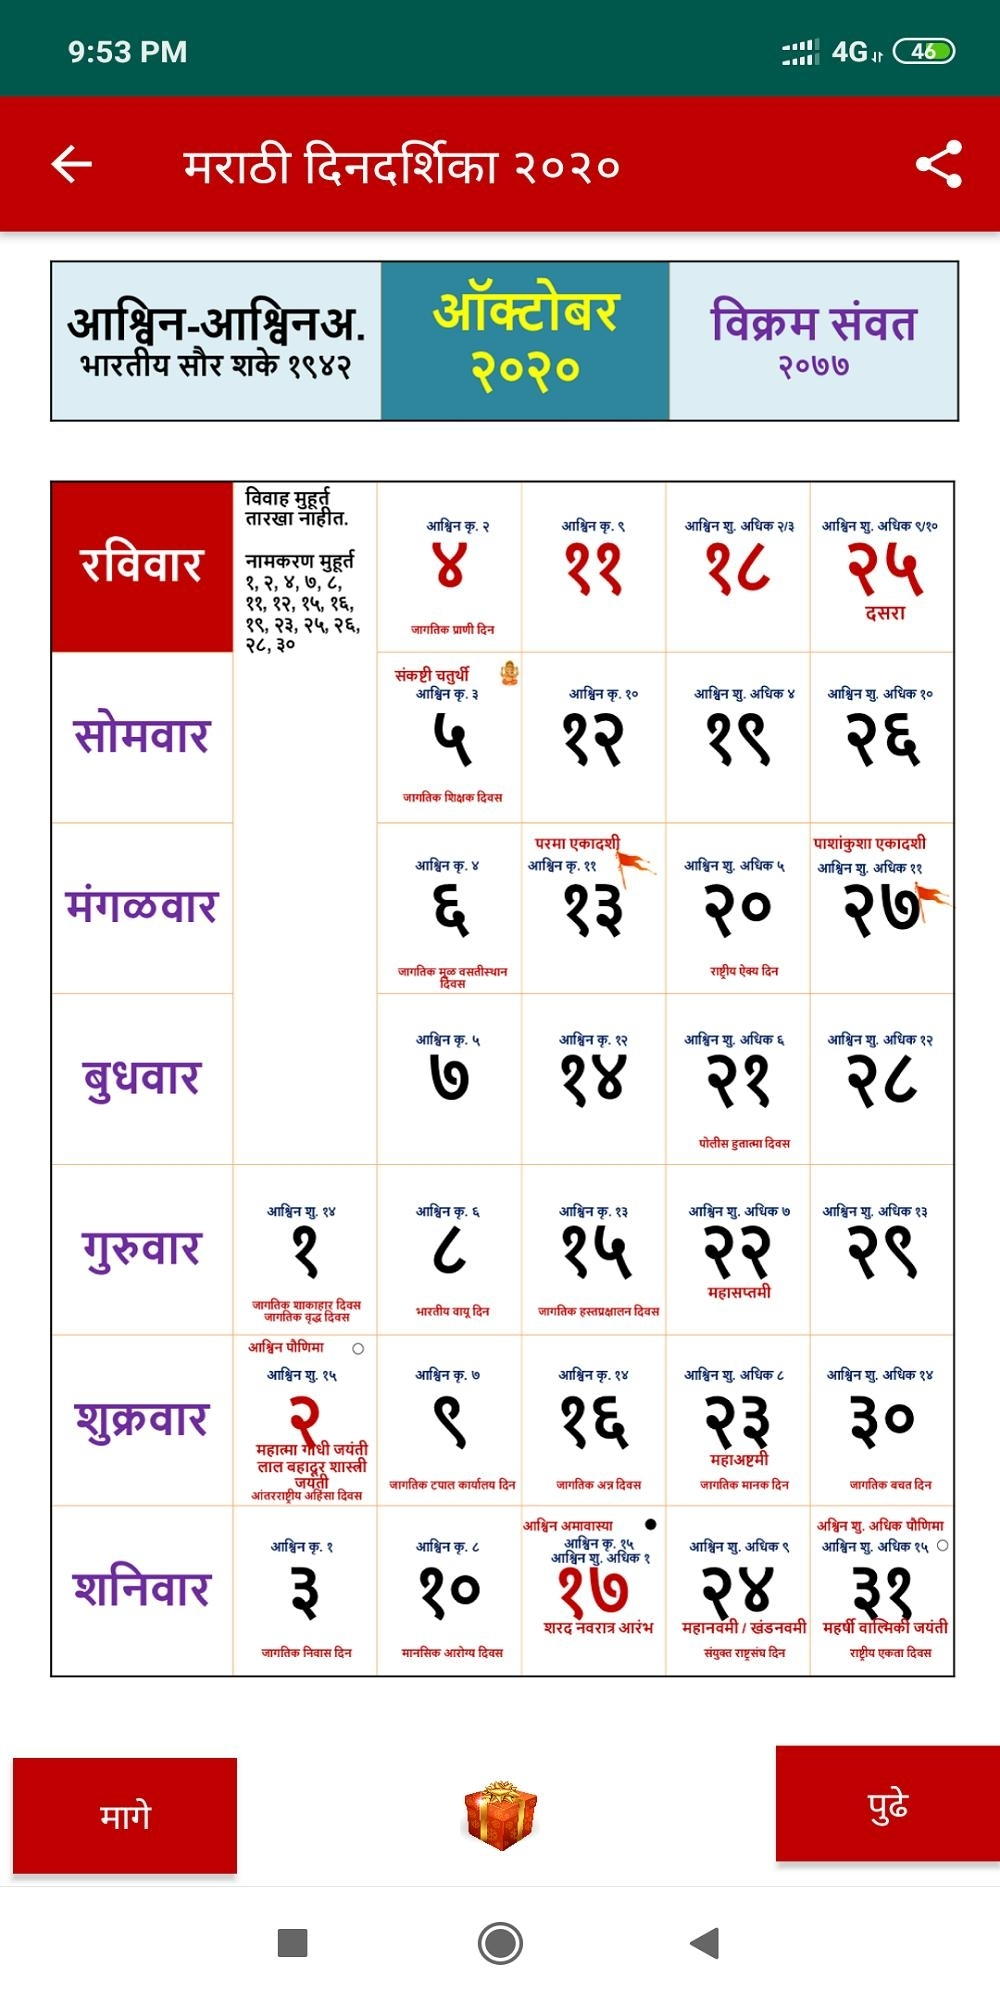 Marathi Calendar 2020 For Android - Apk Download